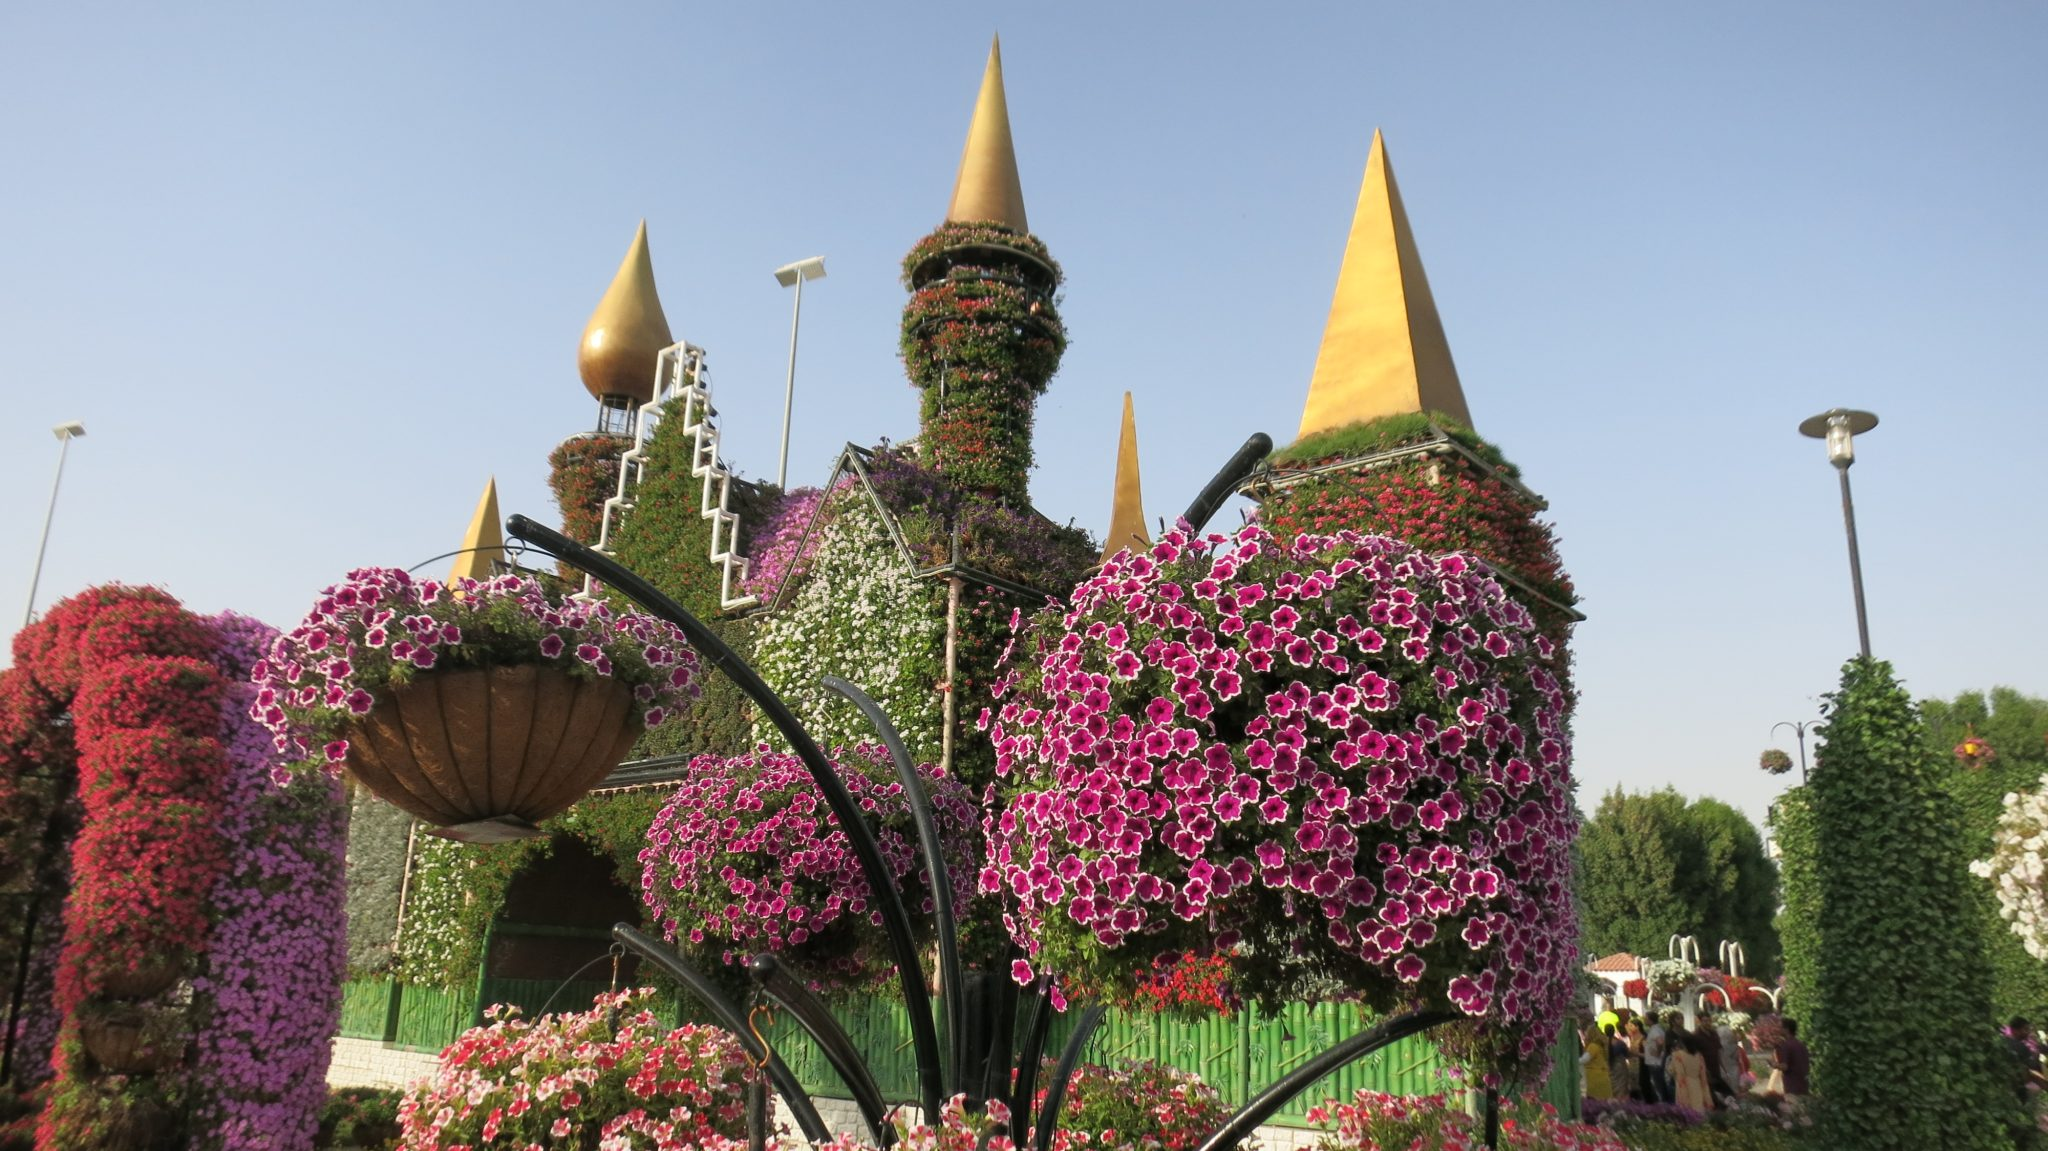 Flowers on the gateway with the mismatched towers at Dubai Miracle Garden